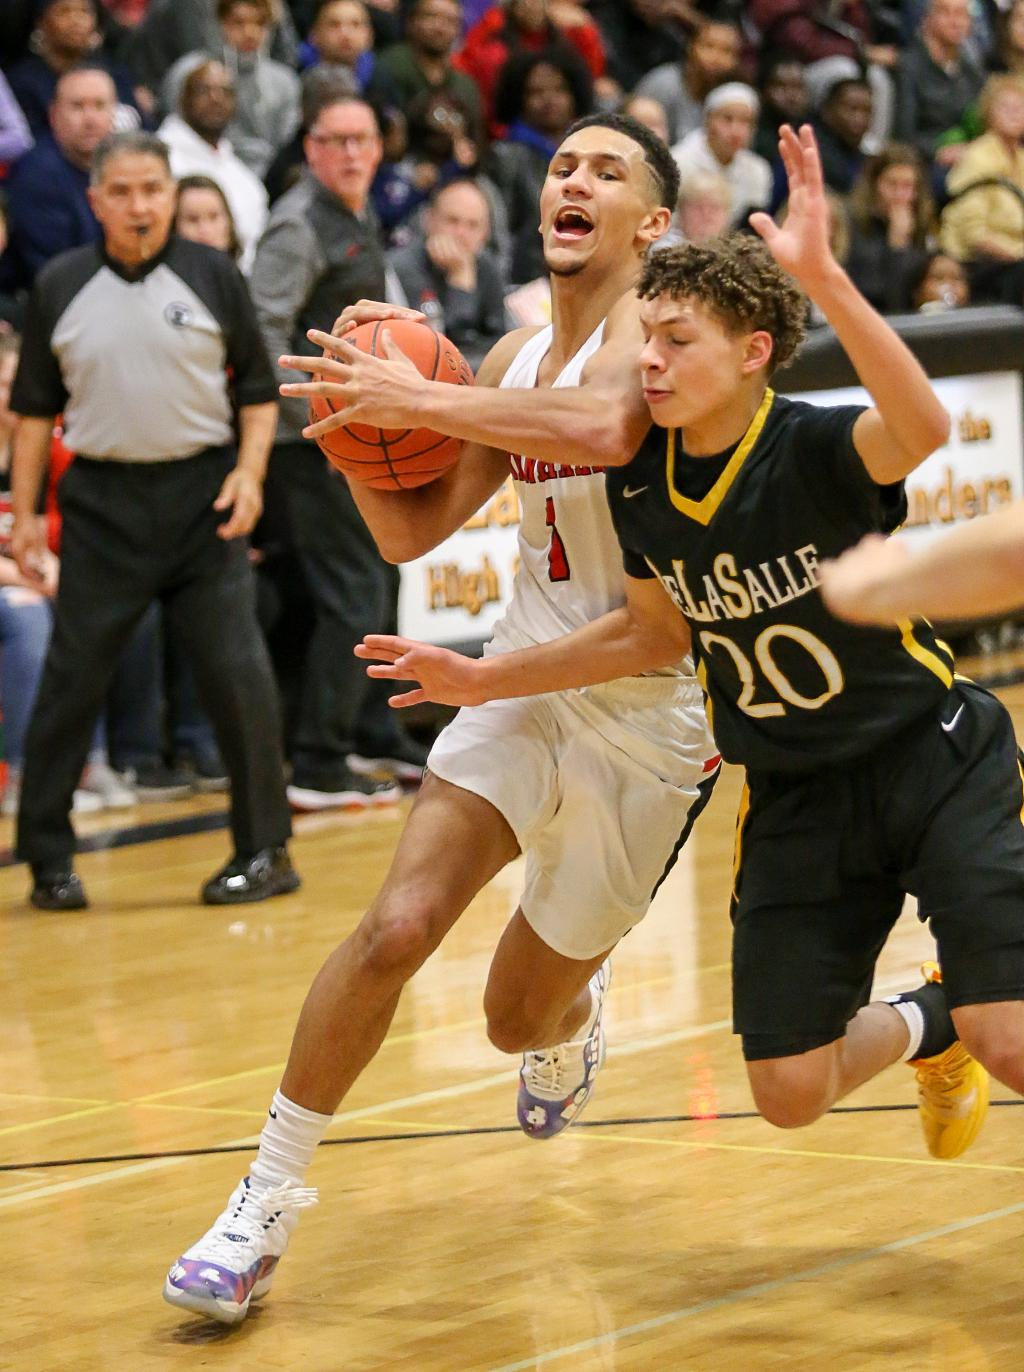 Jalen Suggs (1) spots an open lane and drives to the basket past defender Andrew Irvin (20). Suggs' 30 points propelled Minnehaha Academy to a 79-71 win over top-ranked DeLaSalle. Photo by Cheryl Myers, SportsEngine